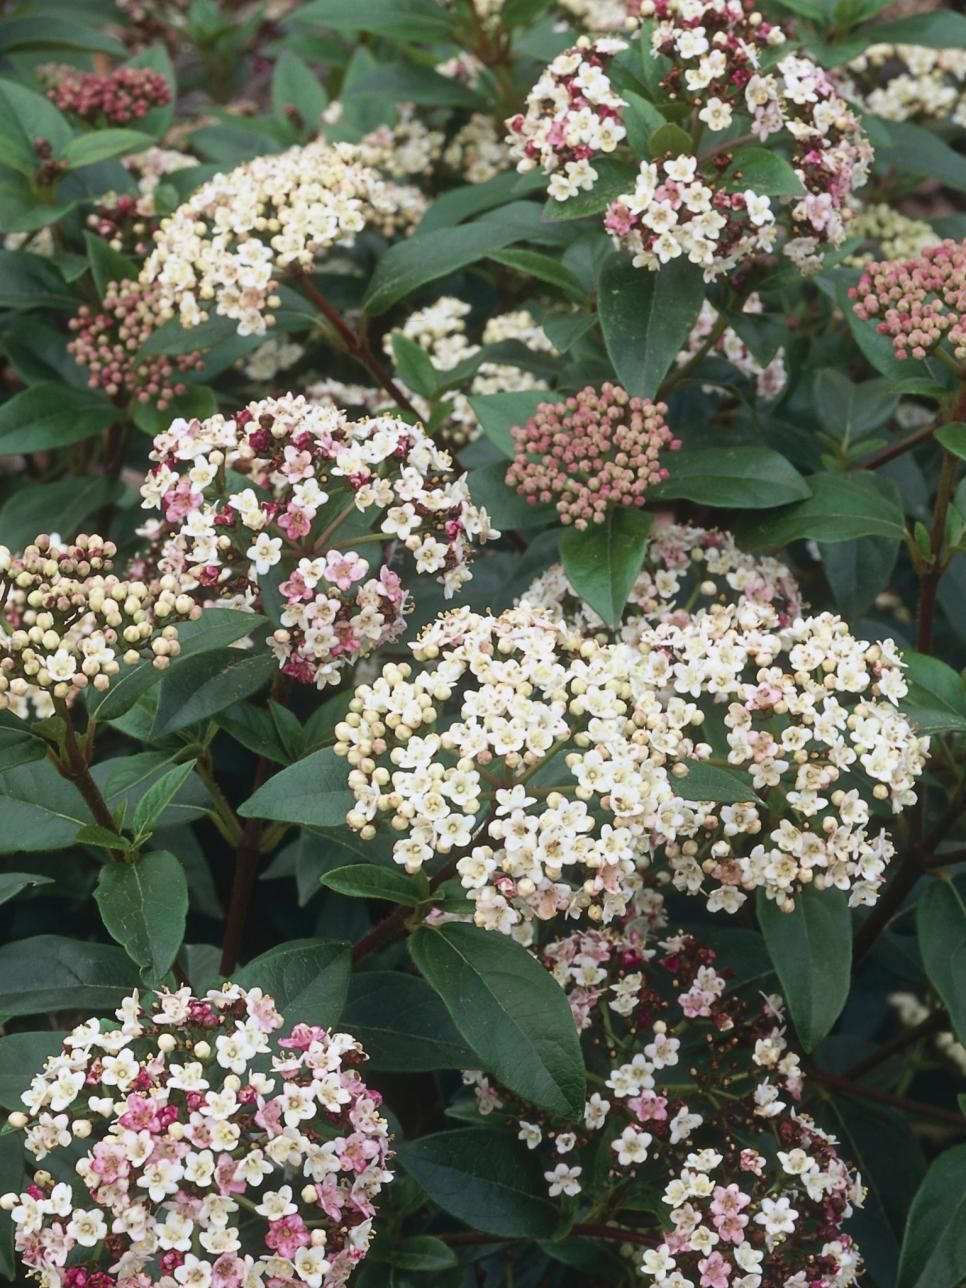 Viburnum Tinus Eve Price A Dense Evergreen Shrub With Cers Of White Flowers Followed By Blue Black Fruits H 10 Ft 3 M S